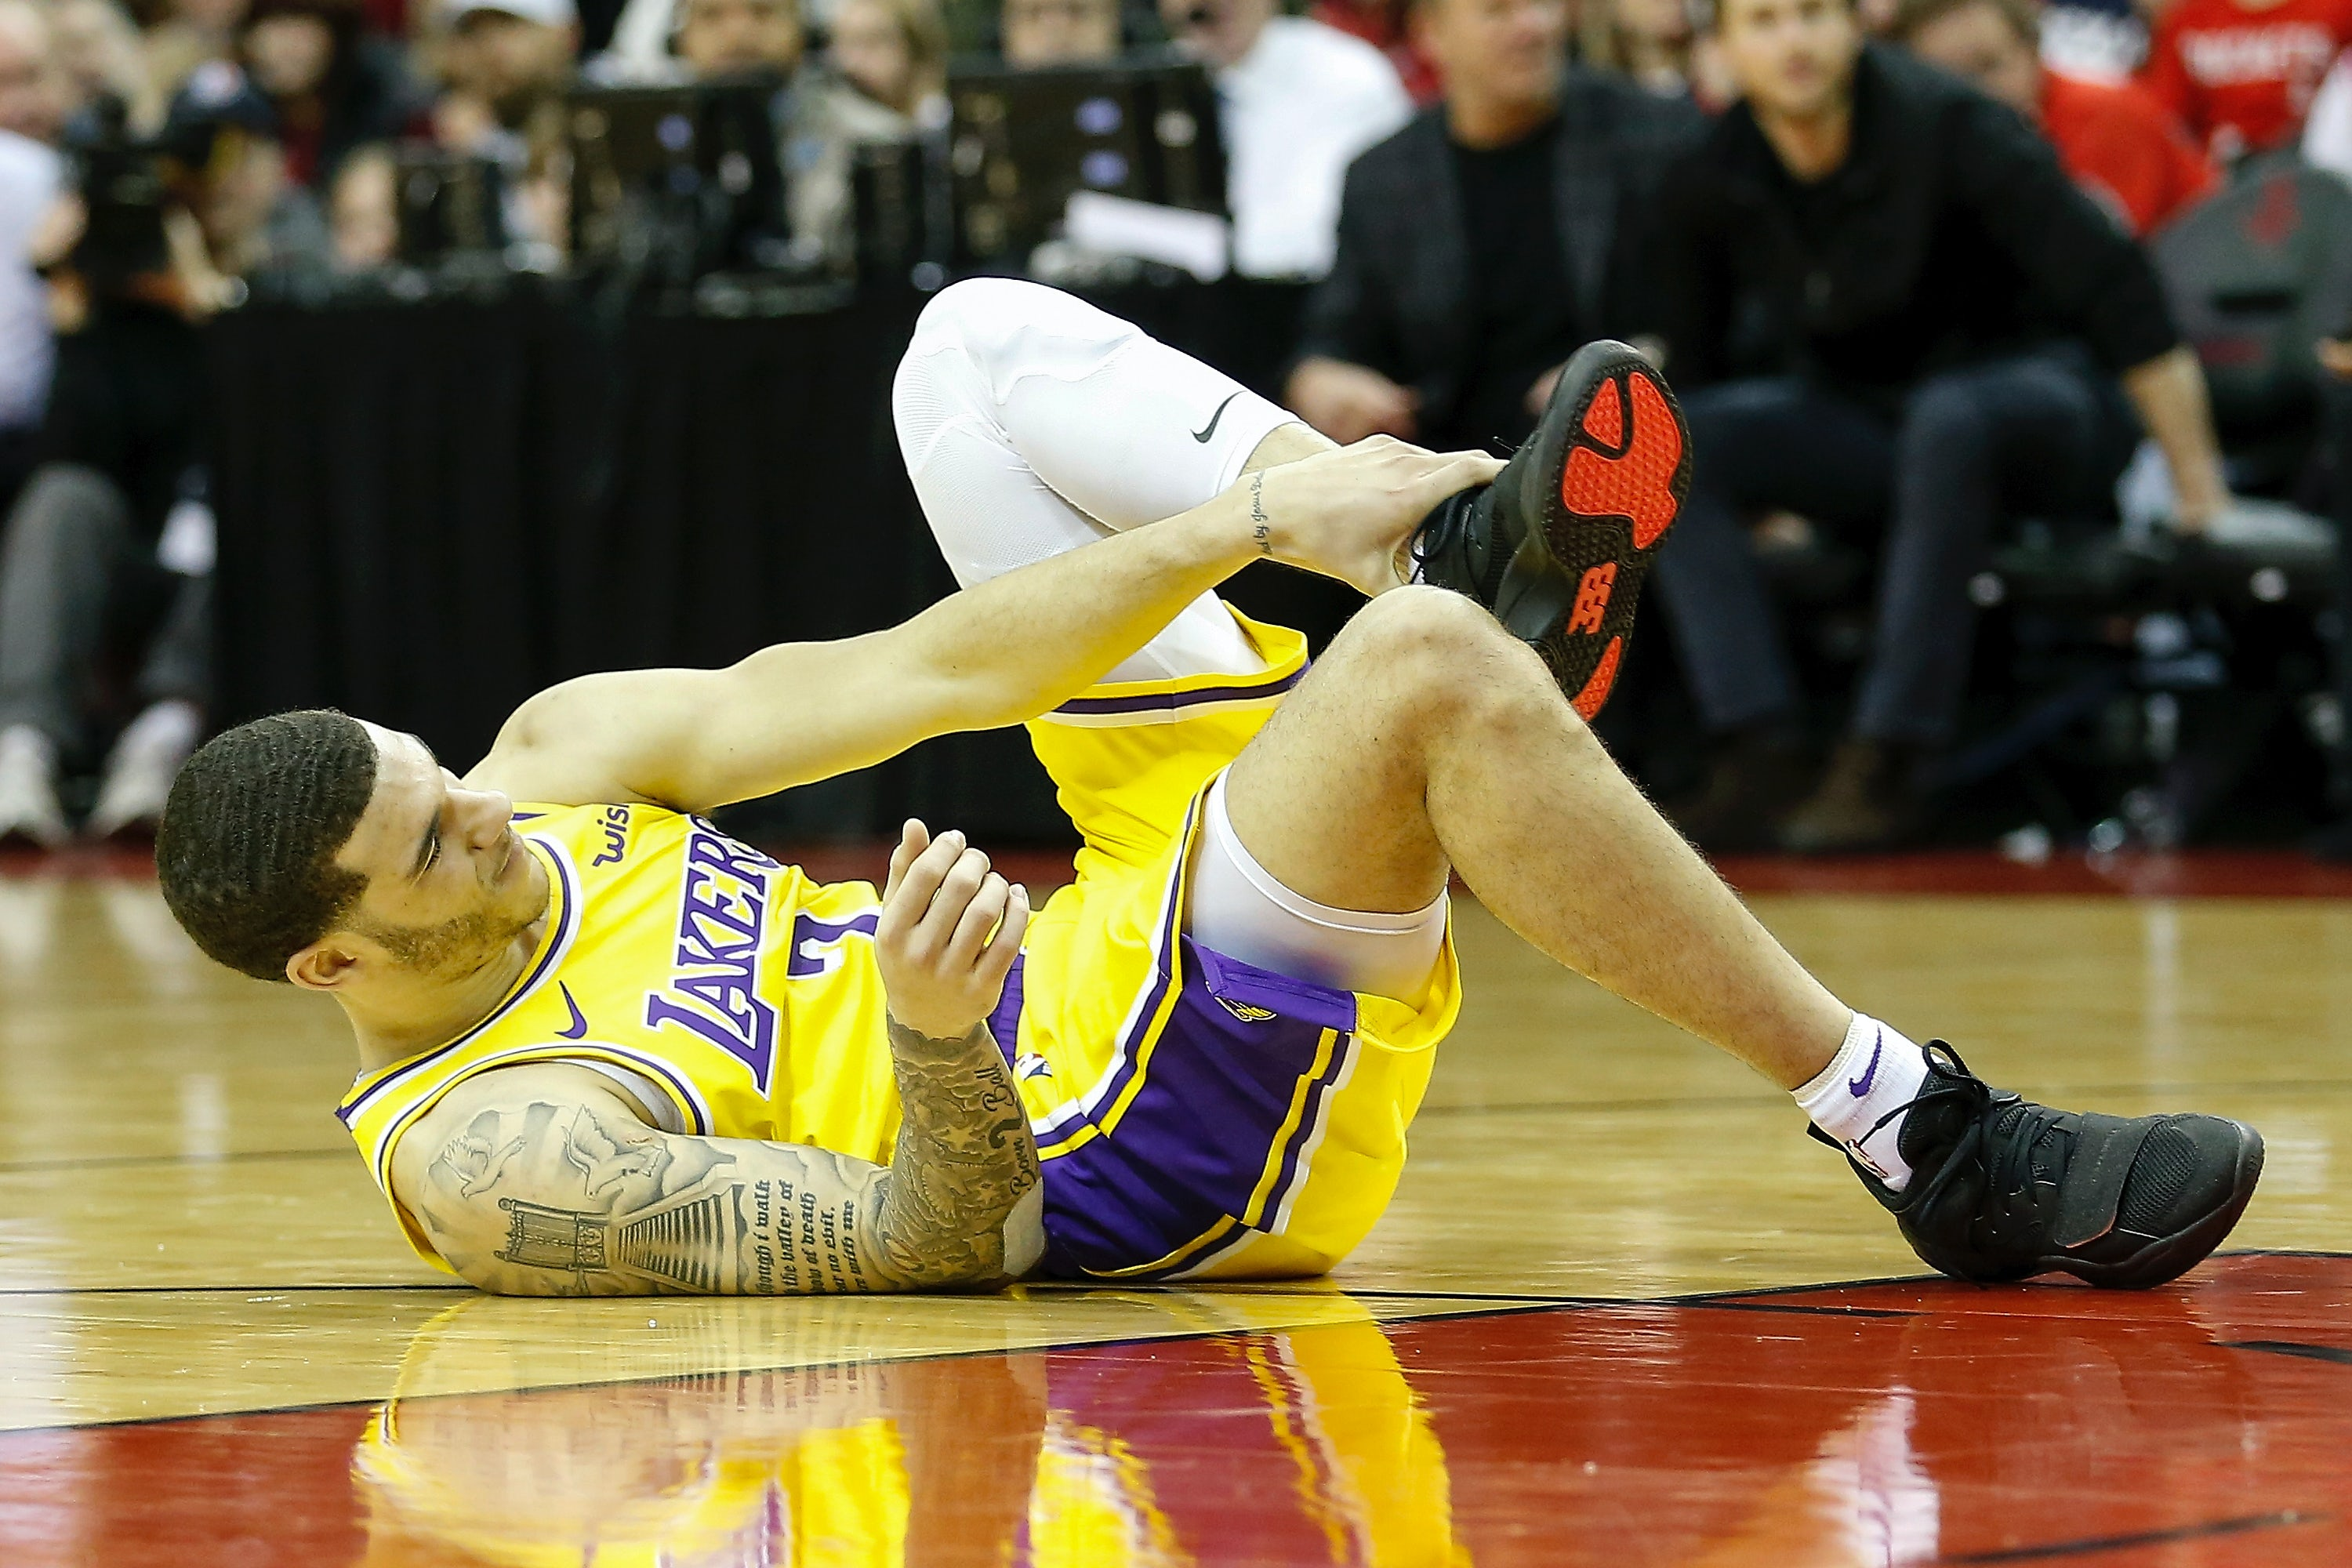 The Week Ahead What Lonzo Ball S Covered Up Tattoo Tells Us About The Sneaker Market Bof Professional The Week Ahead Bof